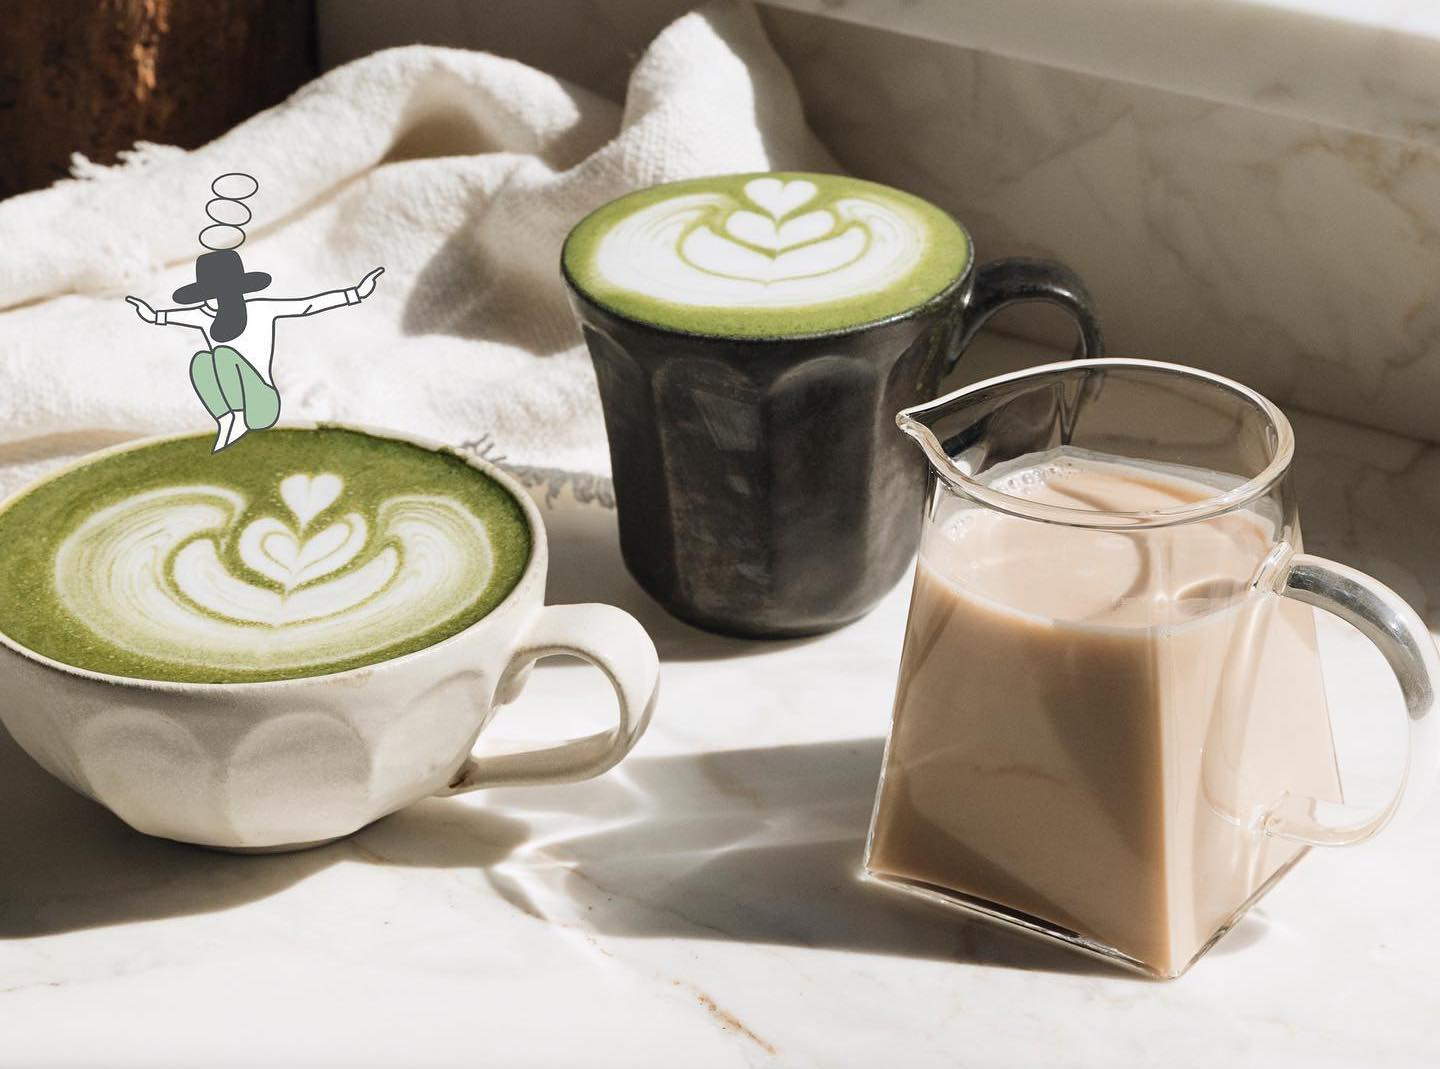 tache pistachio milk in lattes and by itself